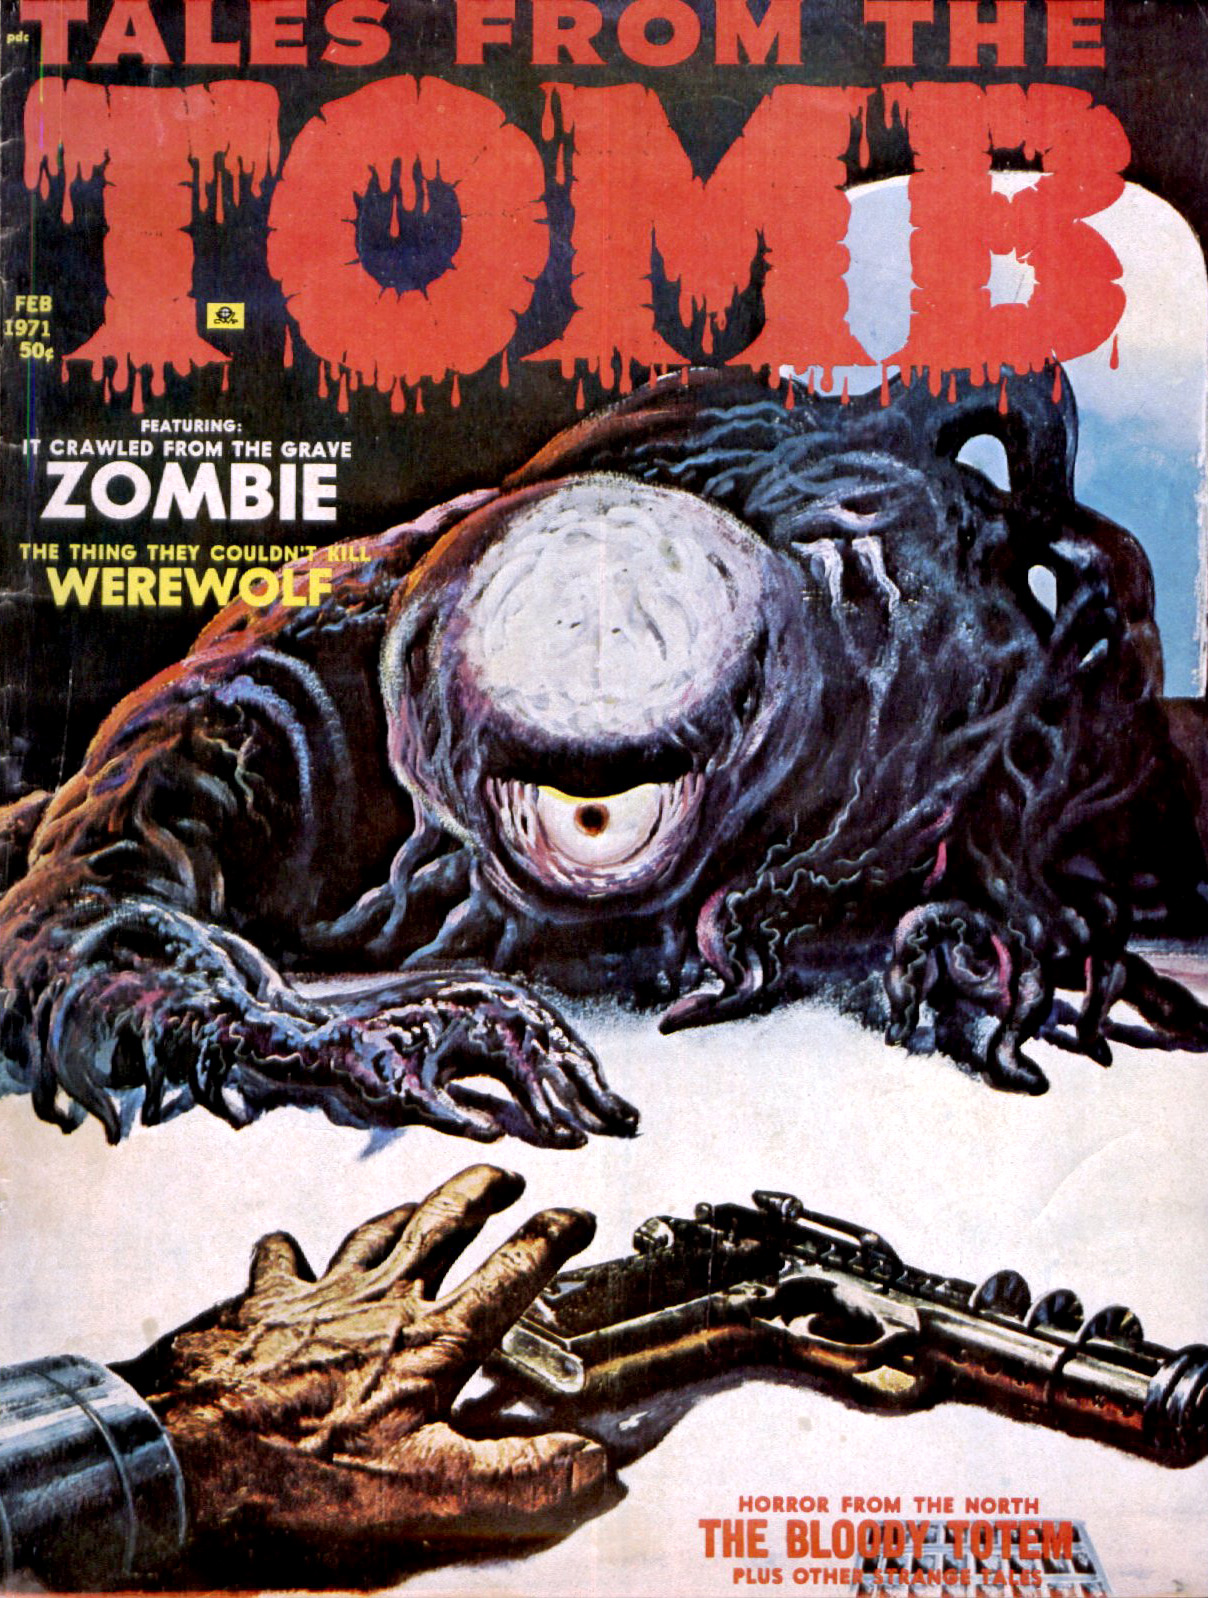 Tales from the Tomb - Vol. 3 #1 (Eerie Publications, 1971)